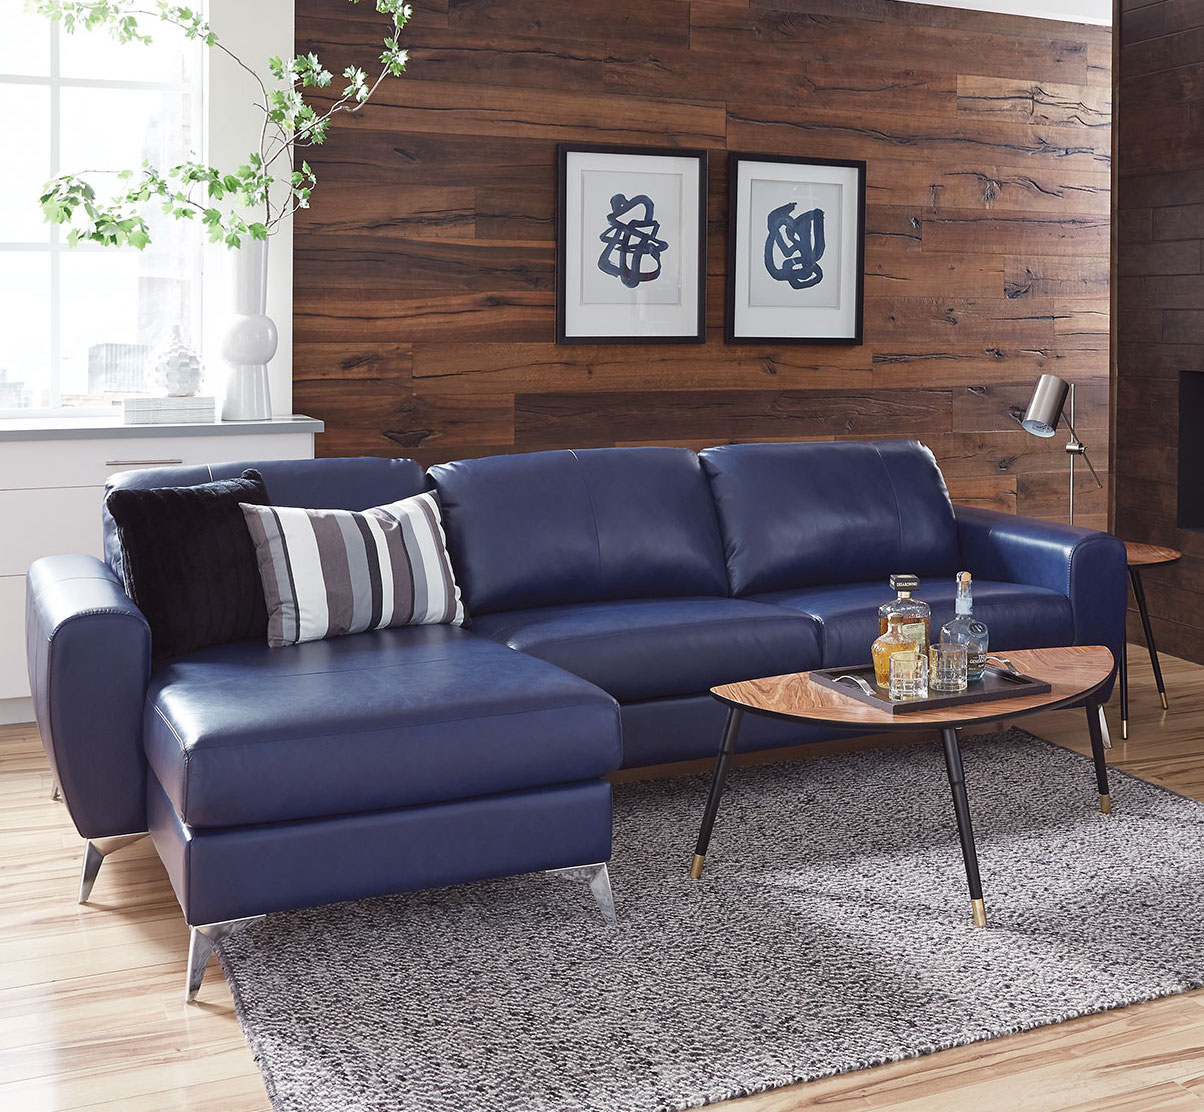 apartments blue sofas sectional size out for apartment cheap small pull futon chaise of tables large hide leather spaces couches sofa couch great with sofabed sleeper